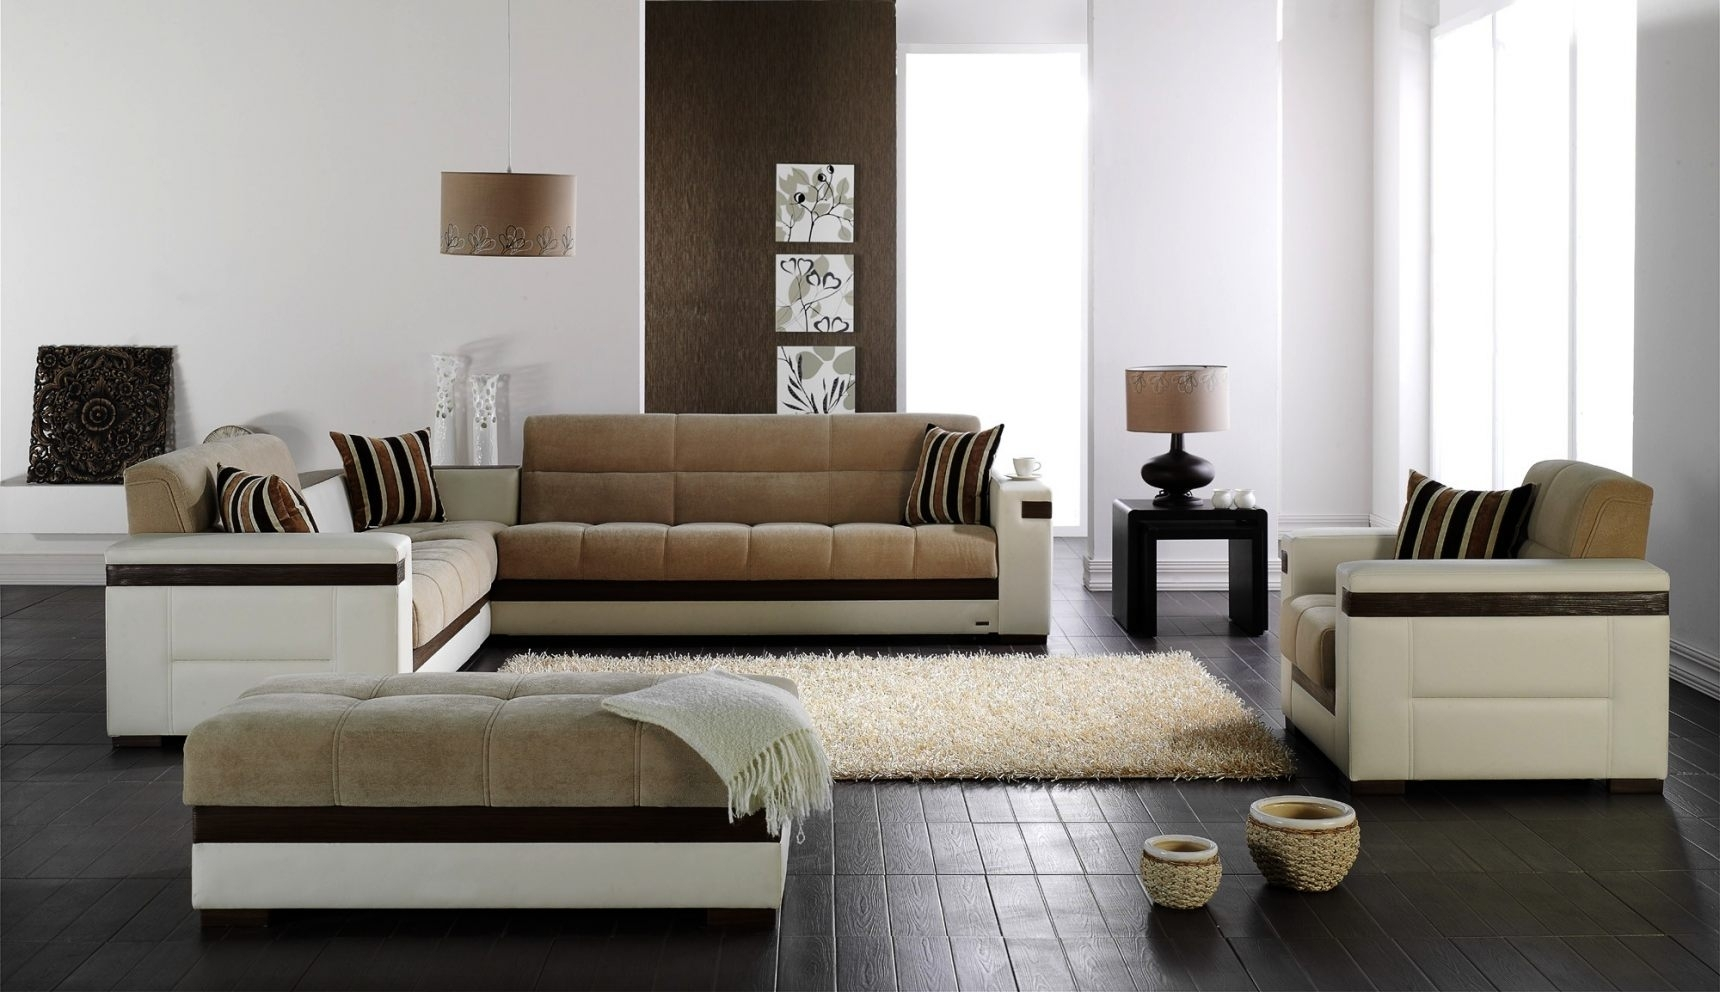 European Sectional Sofas | Good-Fishborn intended for Sectional Sofas From Europe (Image 8 of 10)